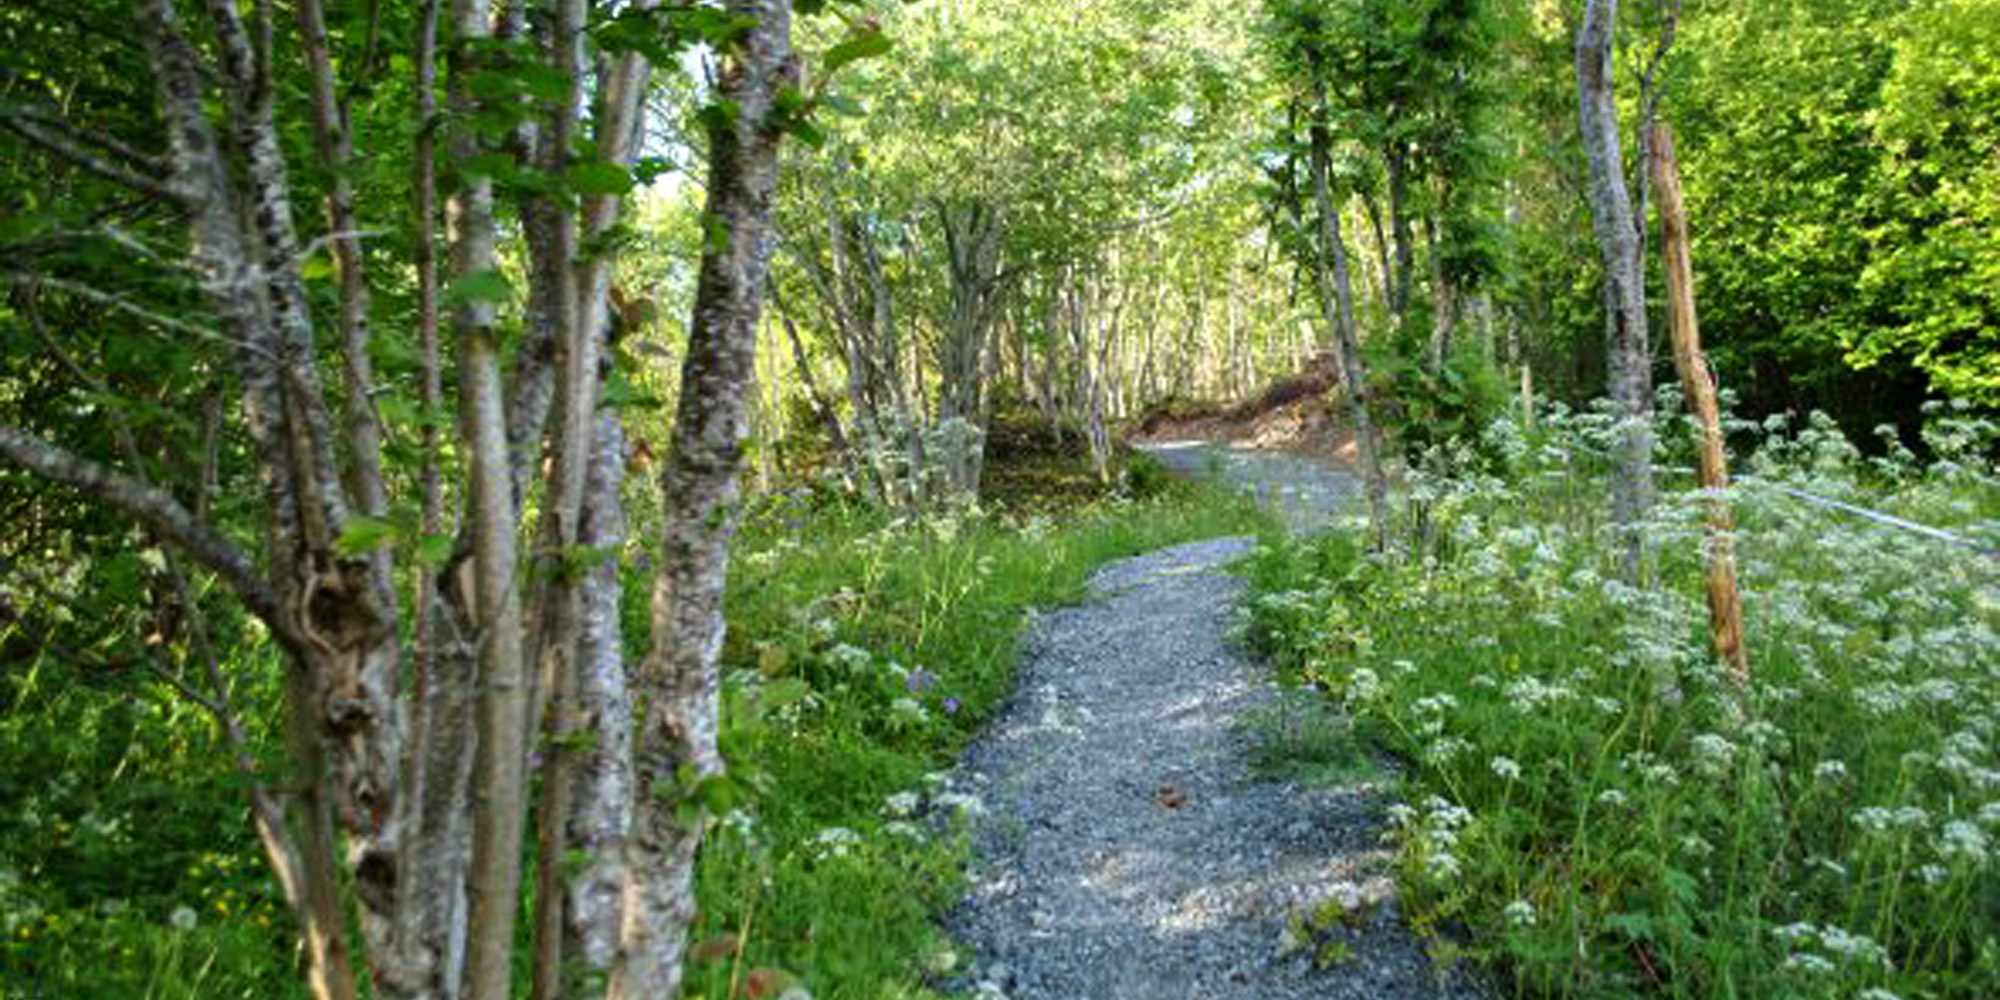 The trail through the woods  to Spettspiret Cabin. Copyright: Letnes Gård